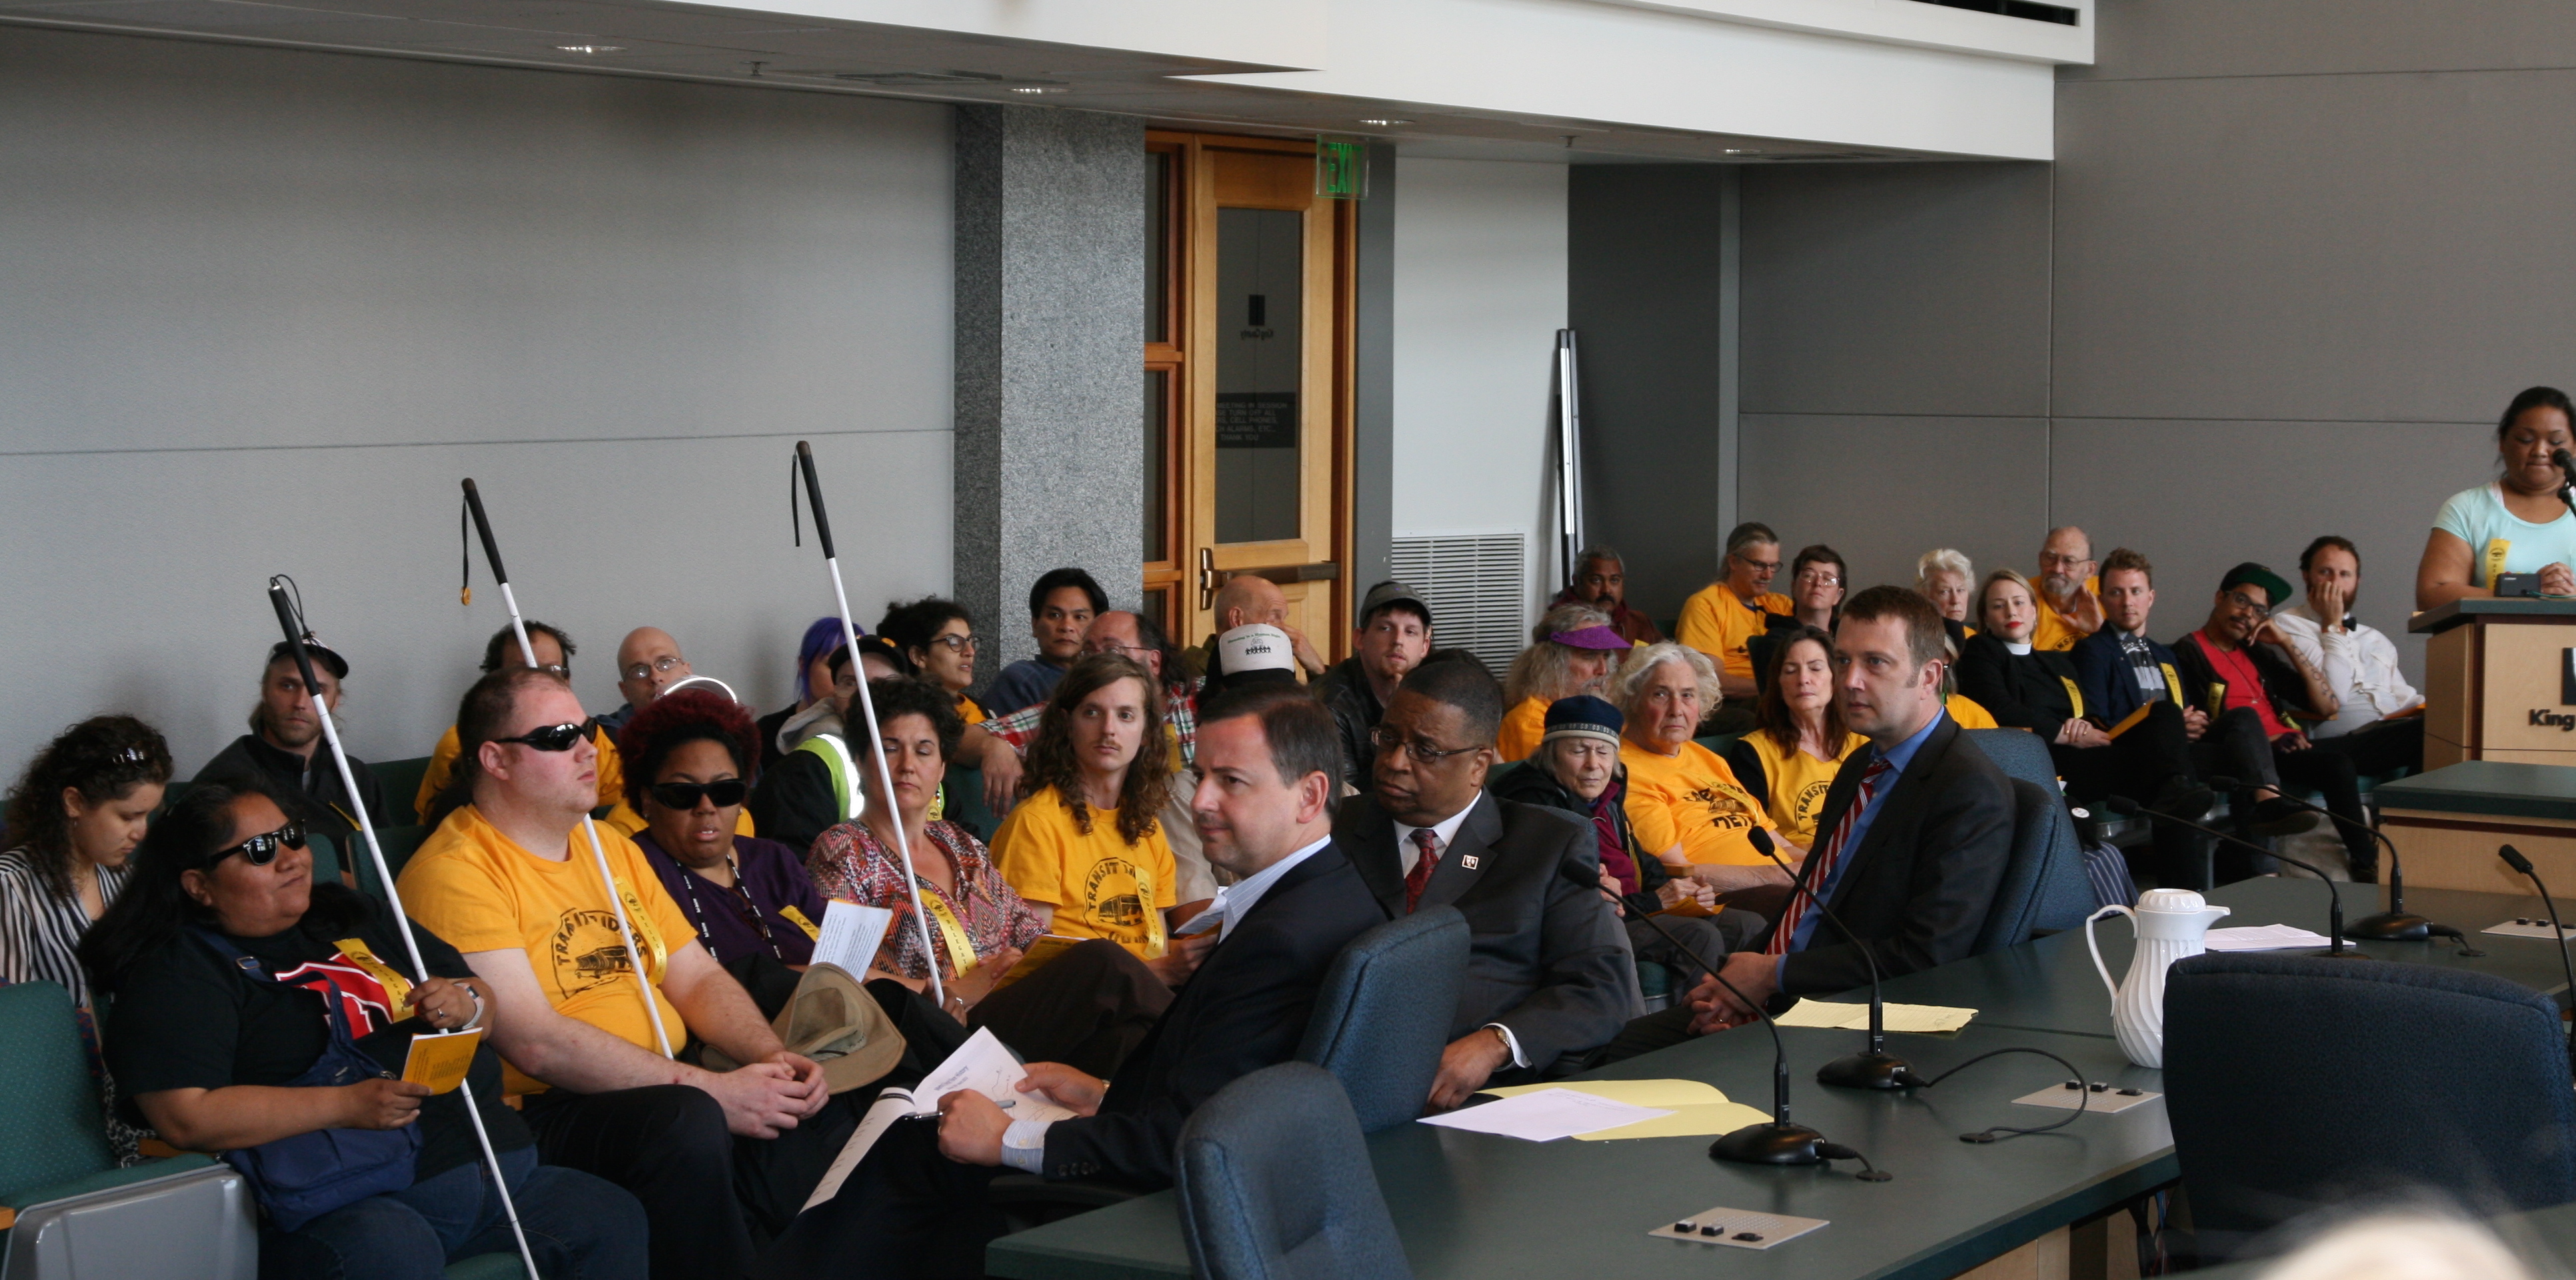 The Councilmembers listen to a delegate testifying to the need for lower transit fares.